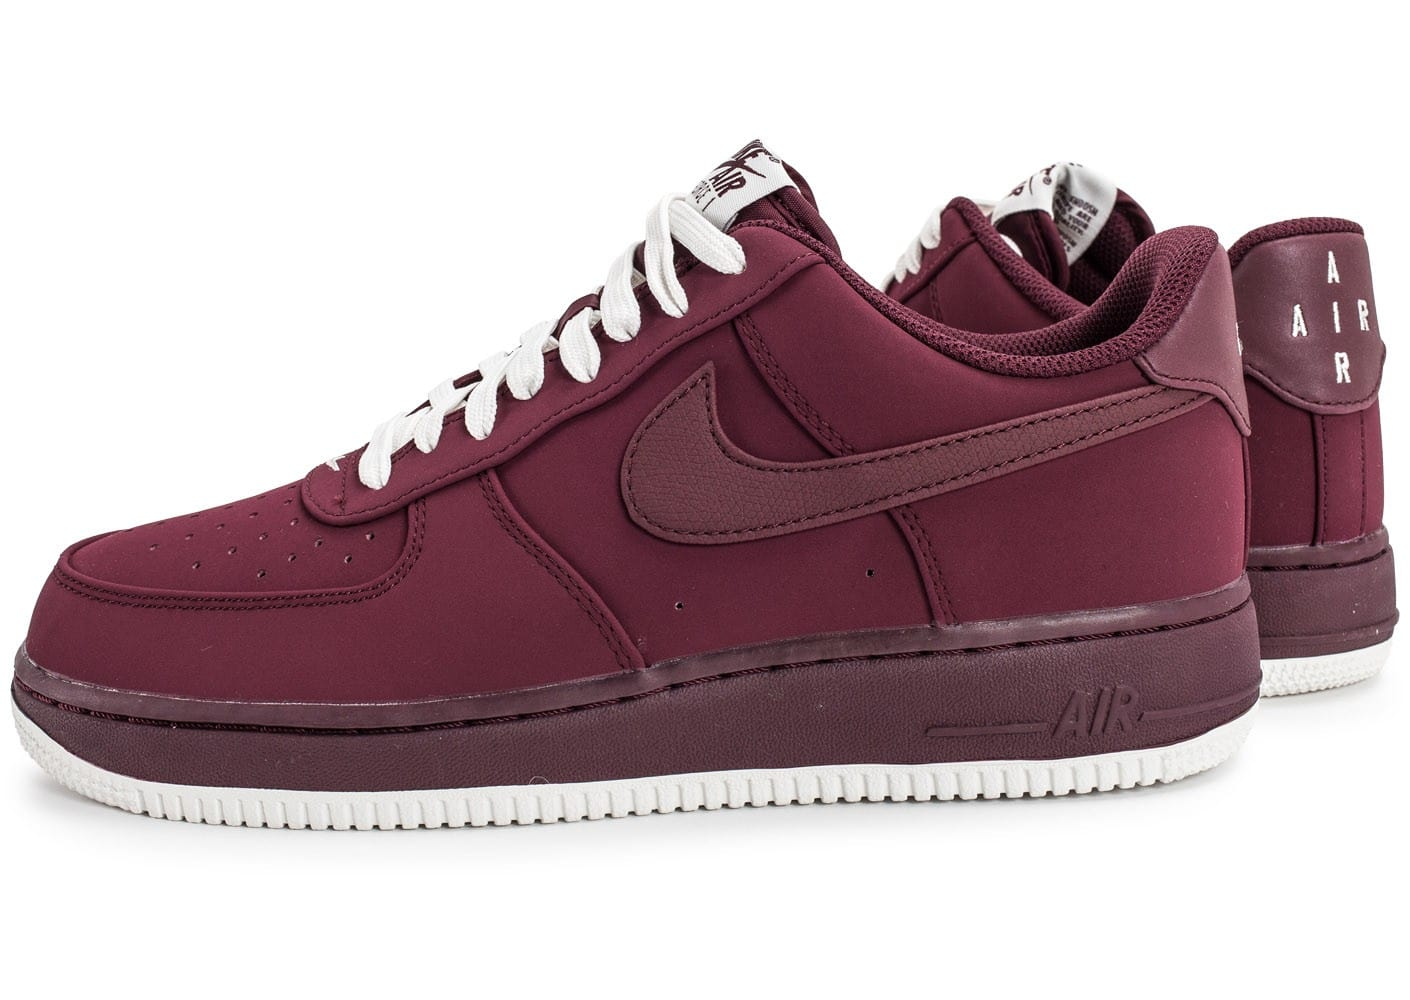 nike air force 1 low bordeaux chaussures homme chausport. Black Bedroom Furniture Sets. Home Design Ideas